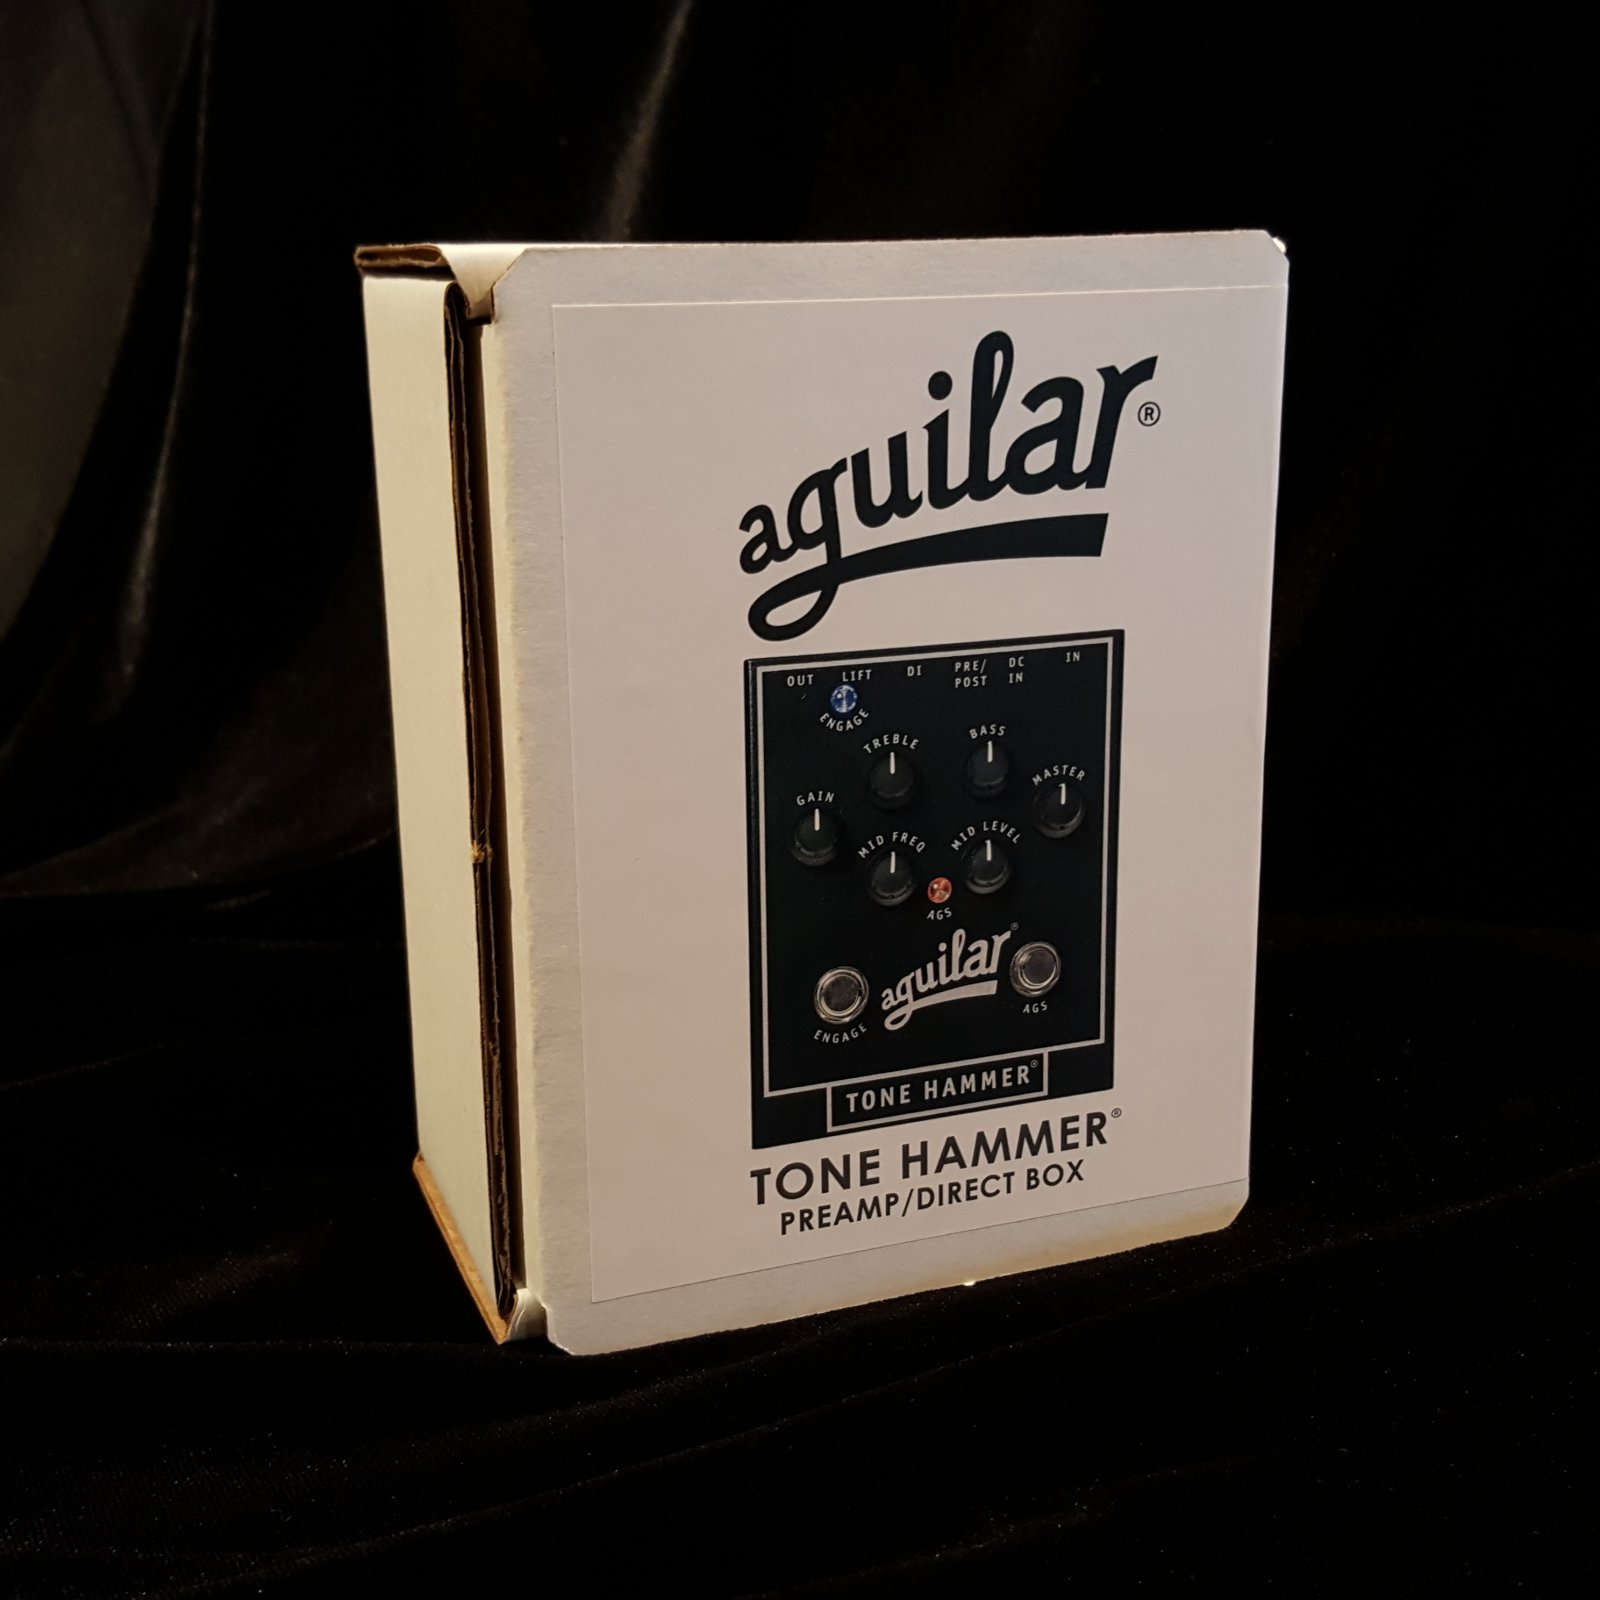 Aguilar Tone Hammer Preamp / Direct Box Pedal